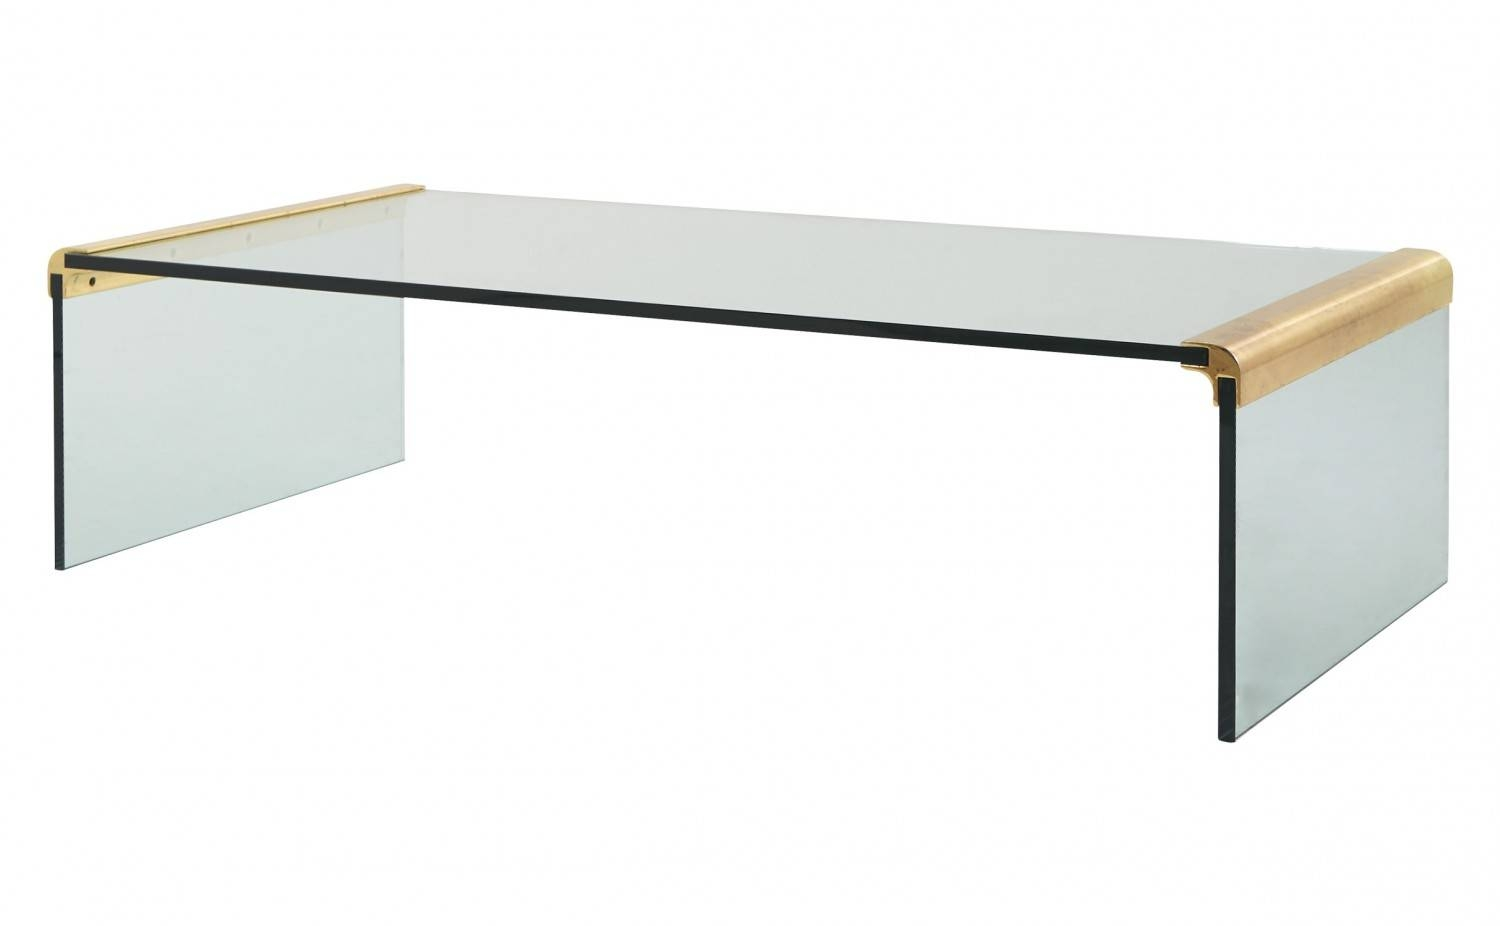 Vintage Glass Waterfall Coffee Table | Jayson Home Throughout Retro Glass Coffee Tables (View 4 of 30)